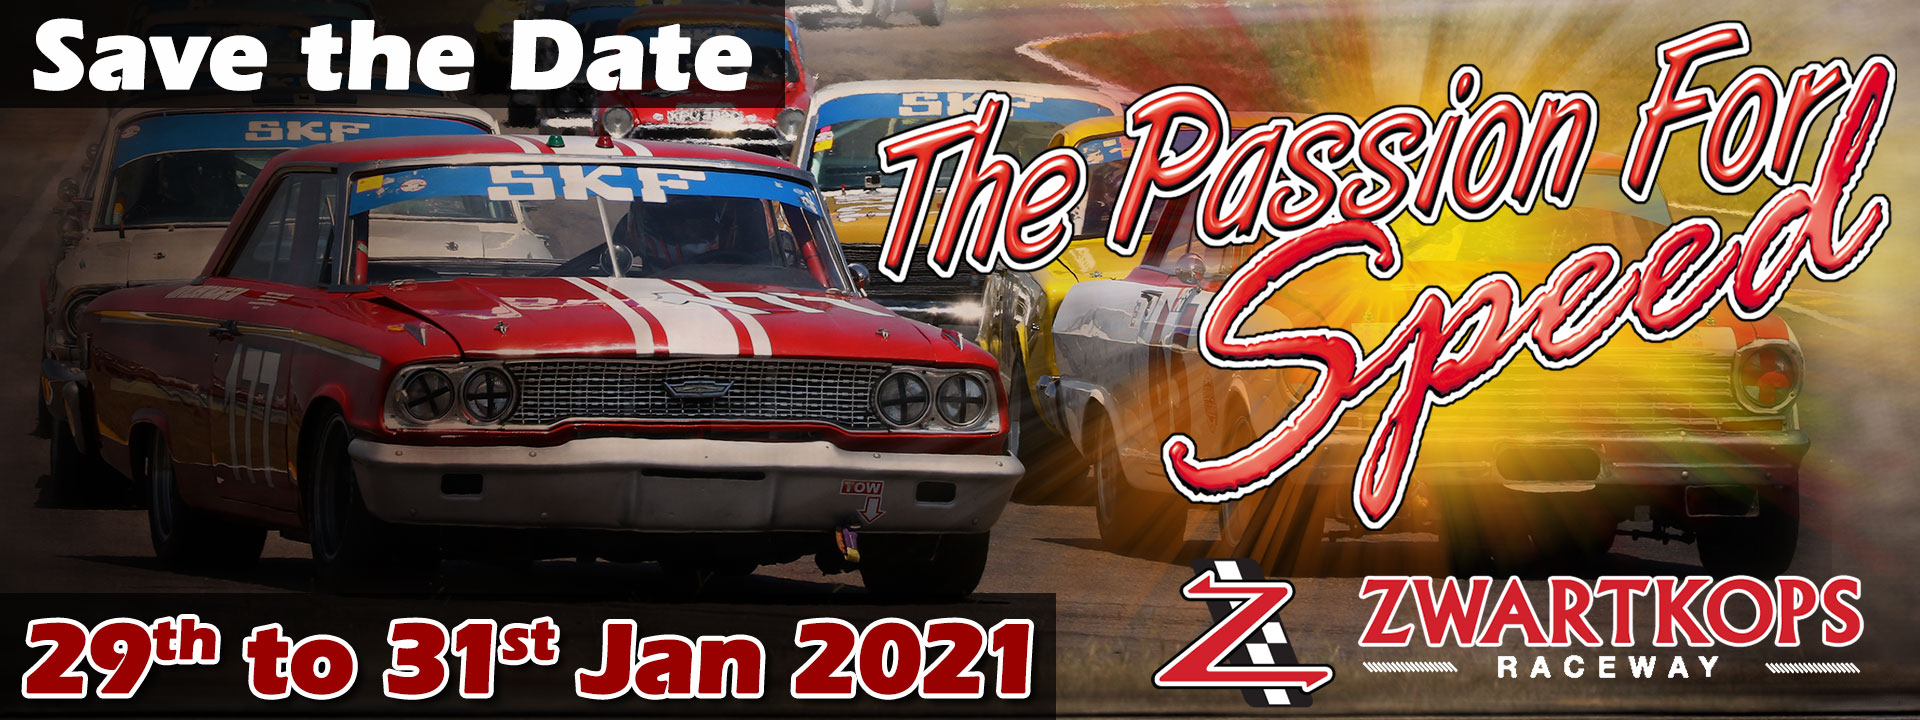 Save the Date: Passion for Speed - 29th to 31st January 2021